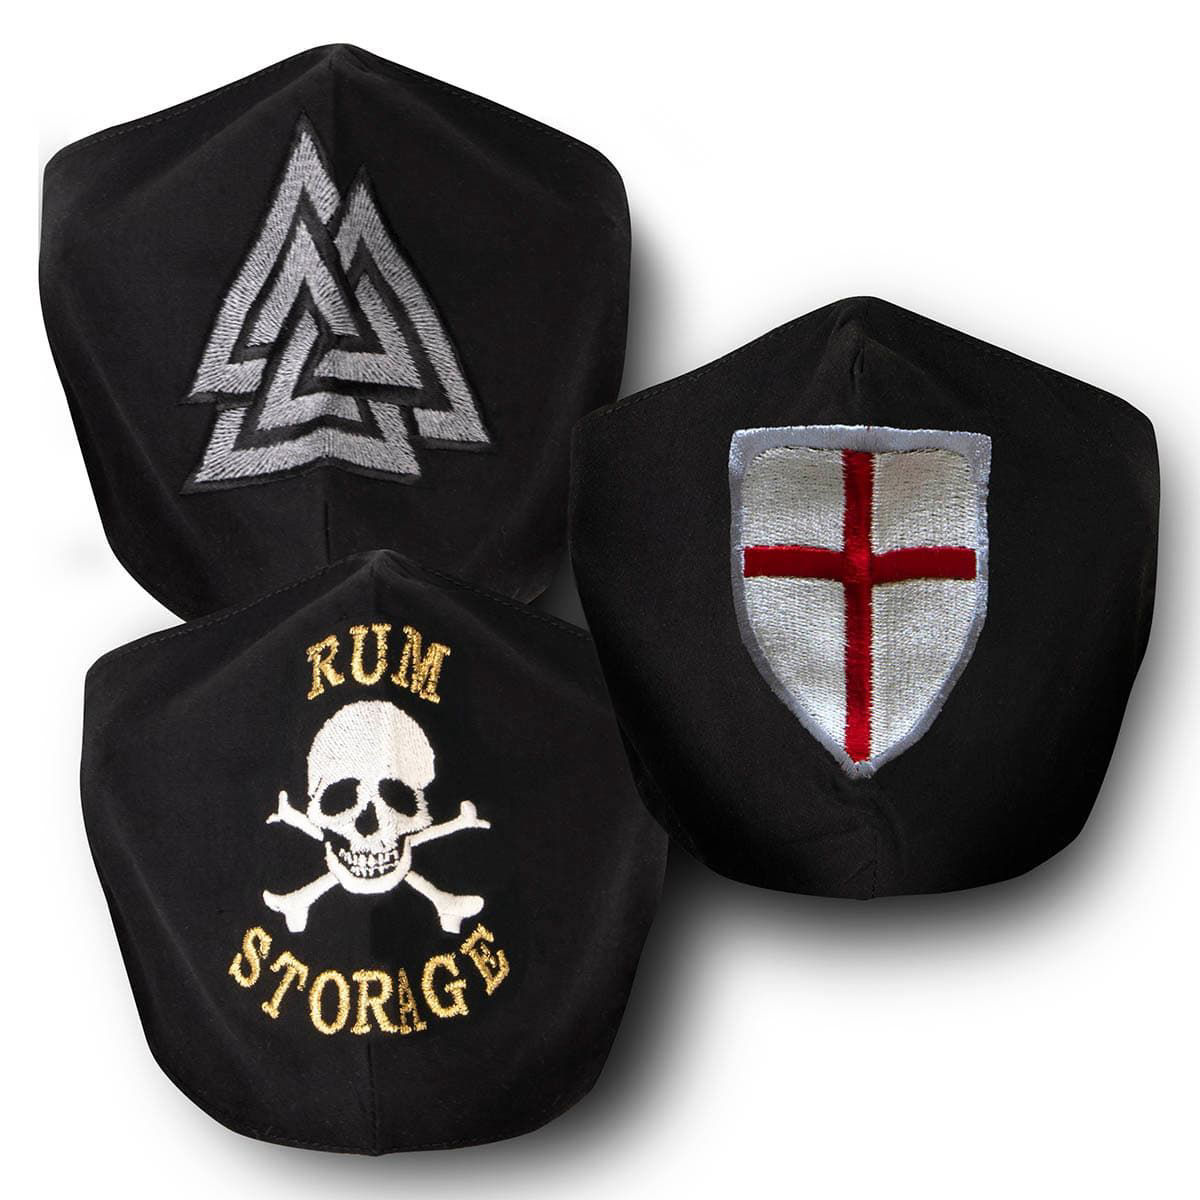 3 Black Cotton Face Masks Viking, Crusader and Pirate, with silk embroidery, adjustable straps and pocket for disposable filter,